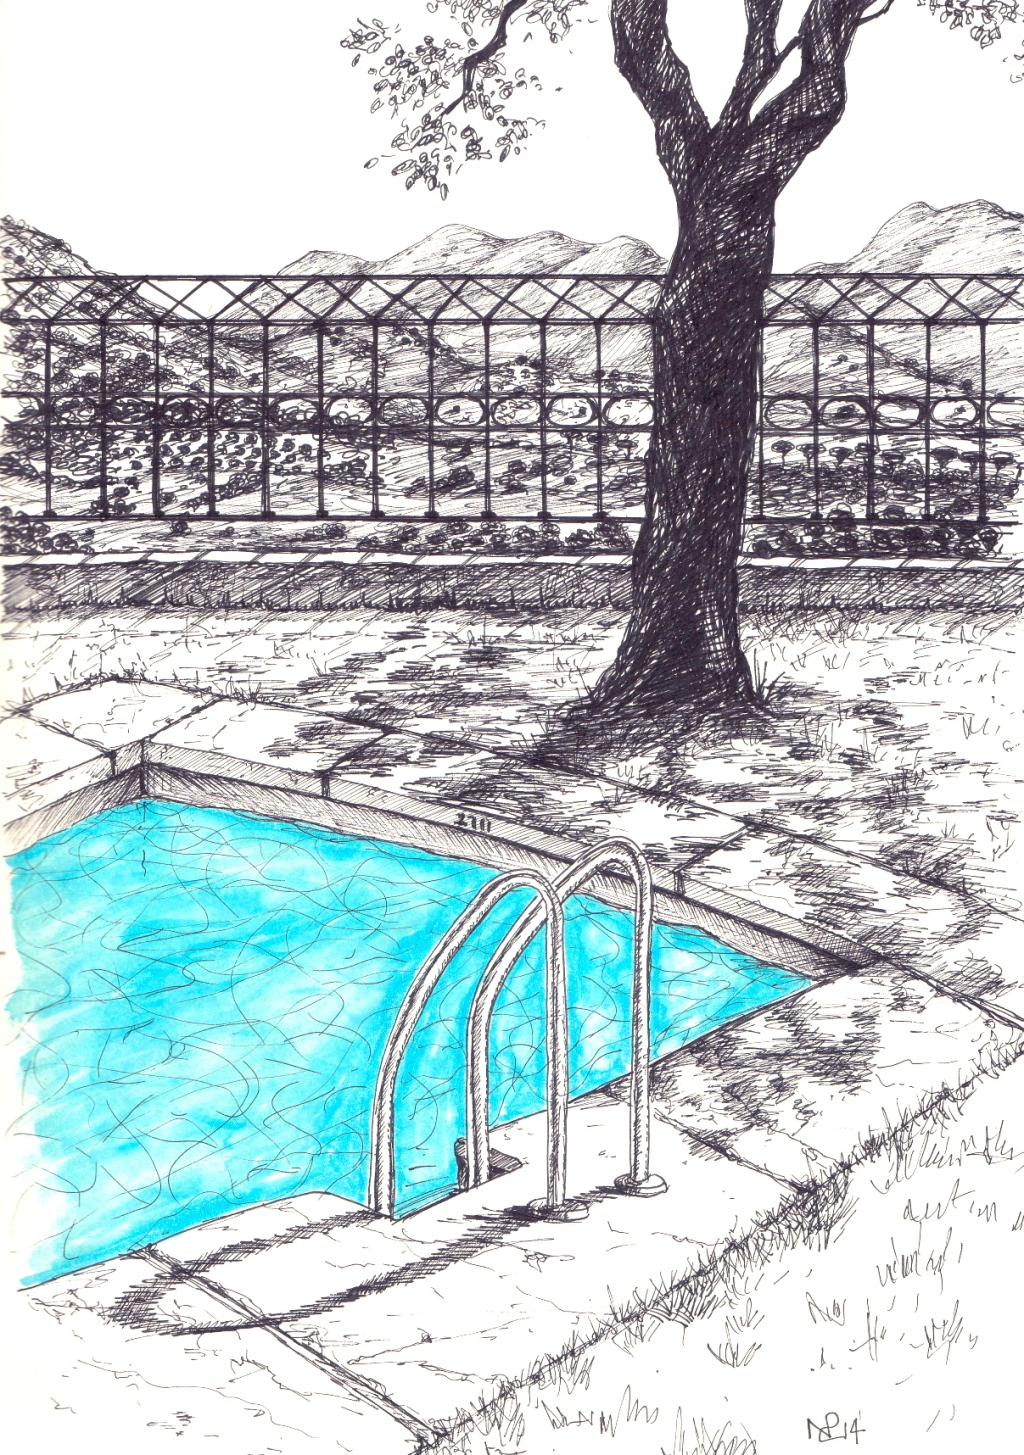 Ronda Sketch 3 - Paradores Pool (2014 © Nicholas de Lacy-Brown, pen and ink on paper)